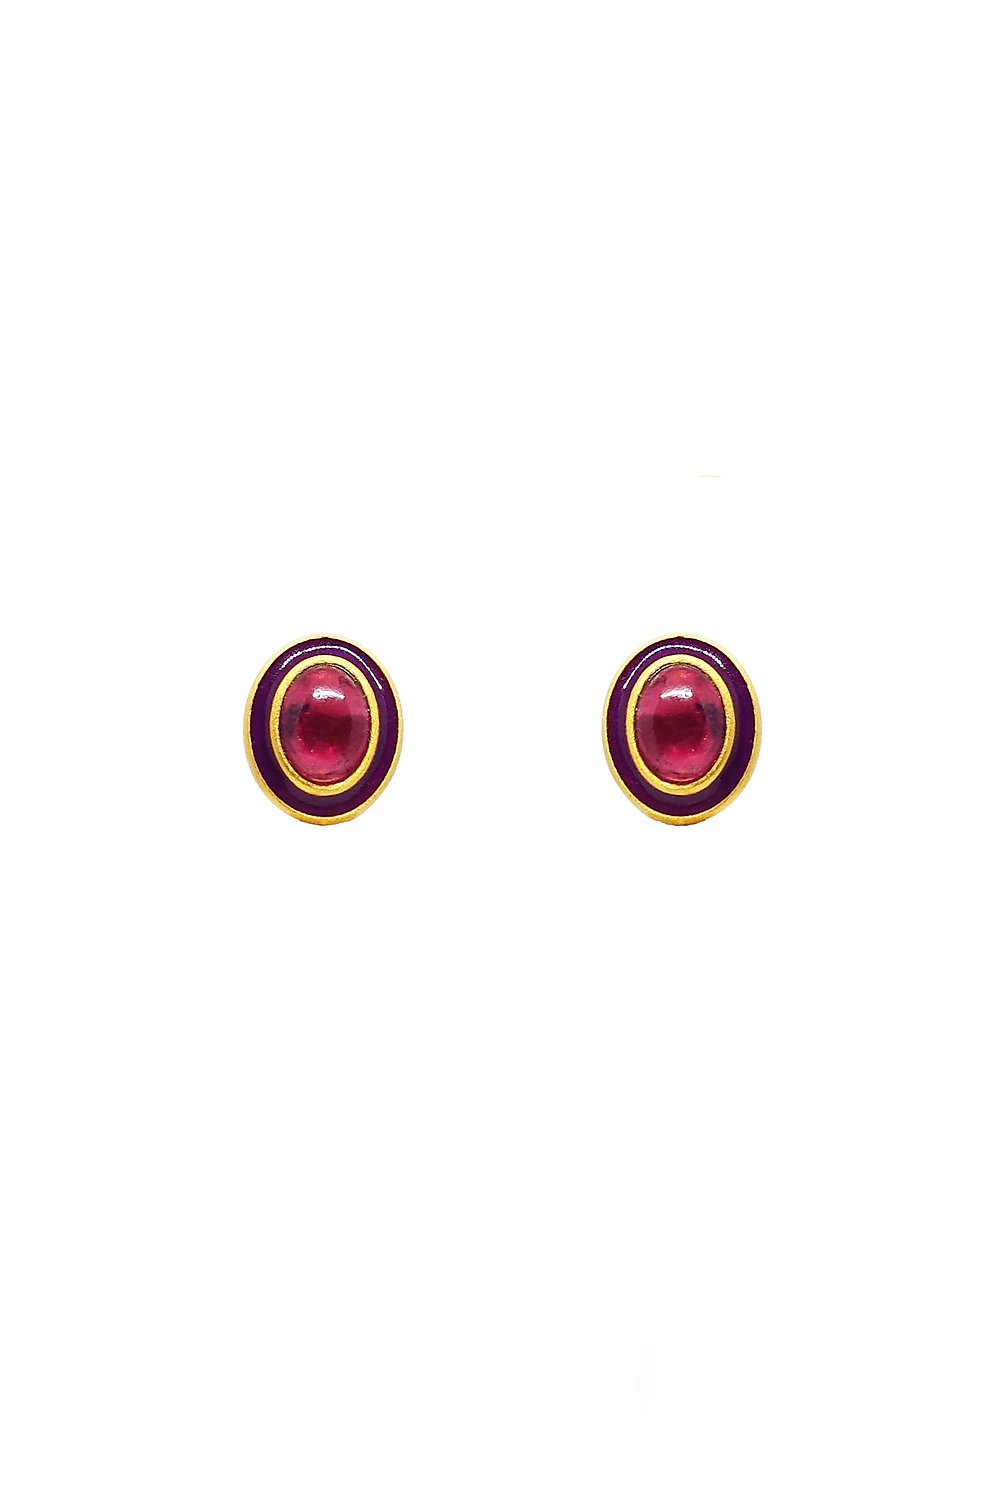 Vayu Earrings